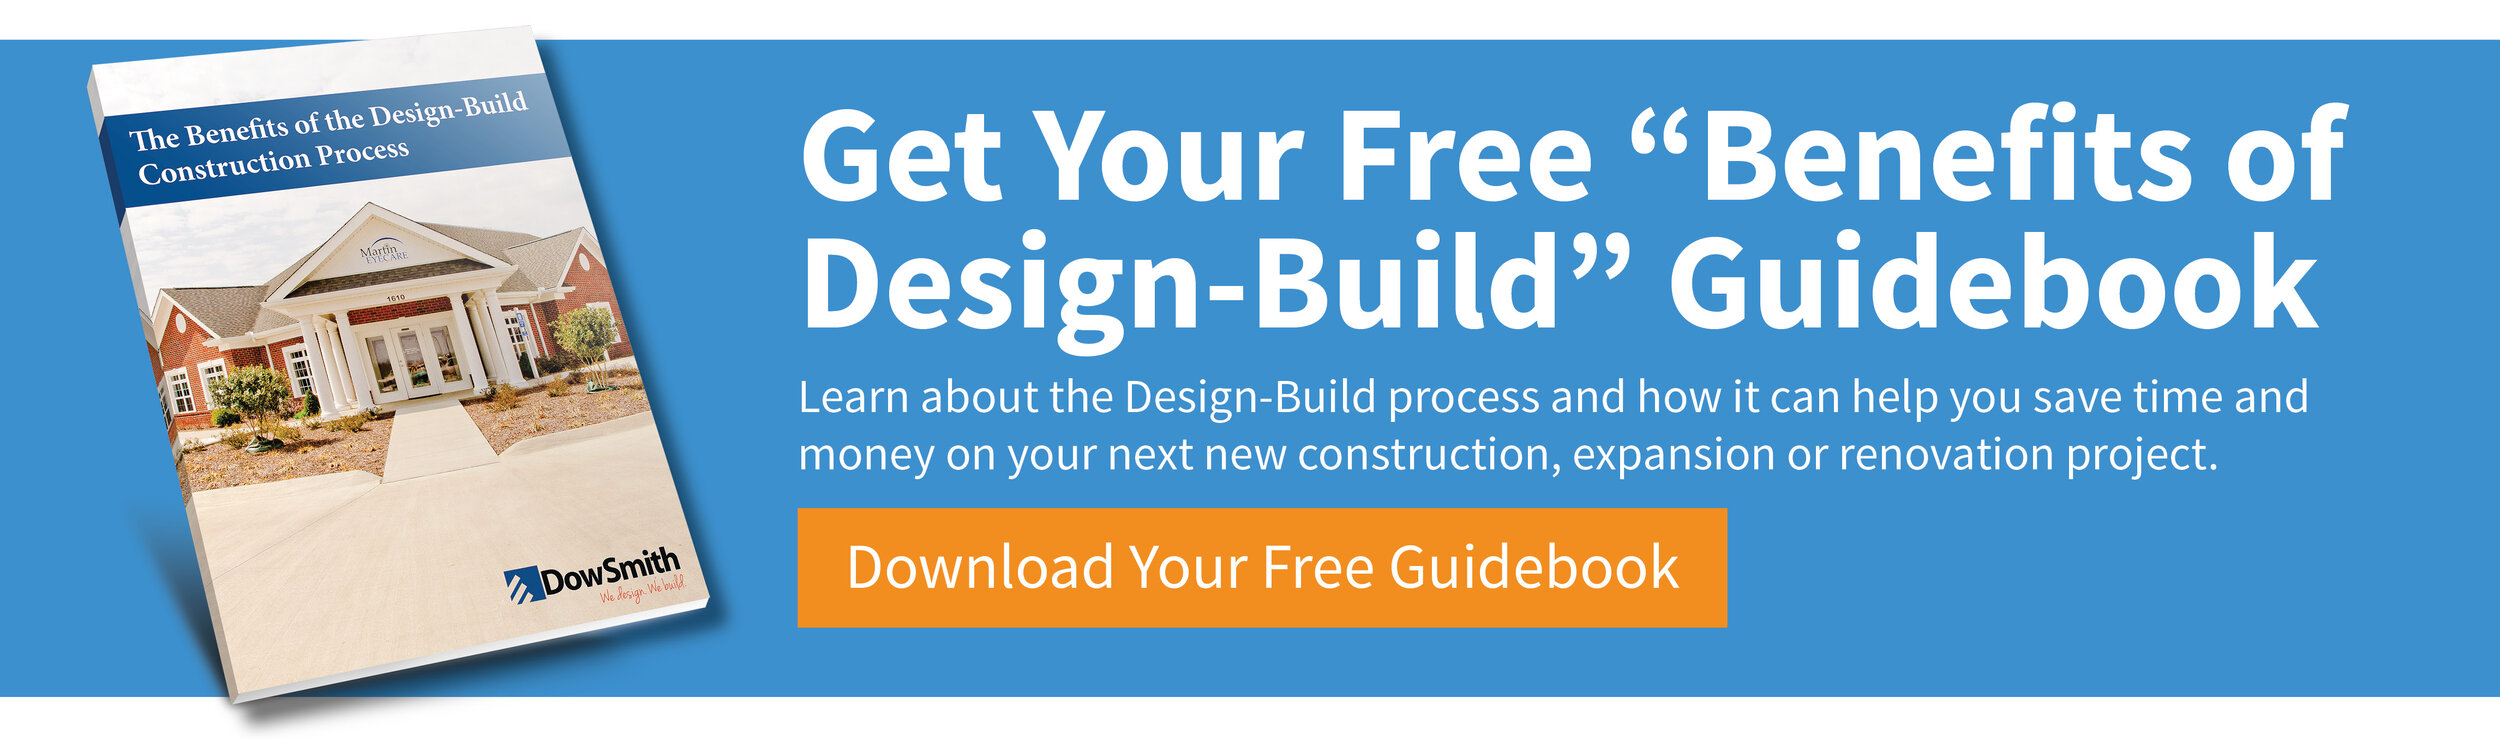 The Benefits of Design-Build | Dow Smith Company